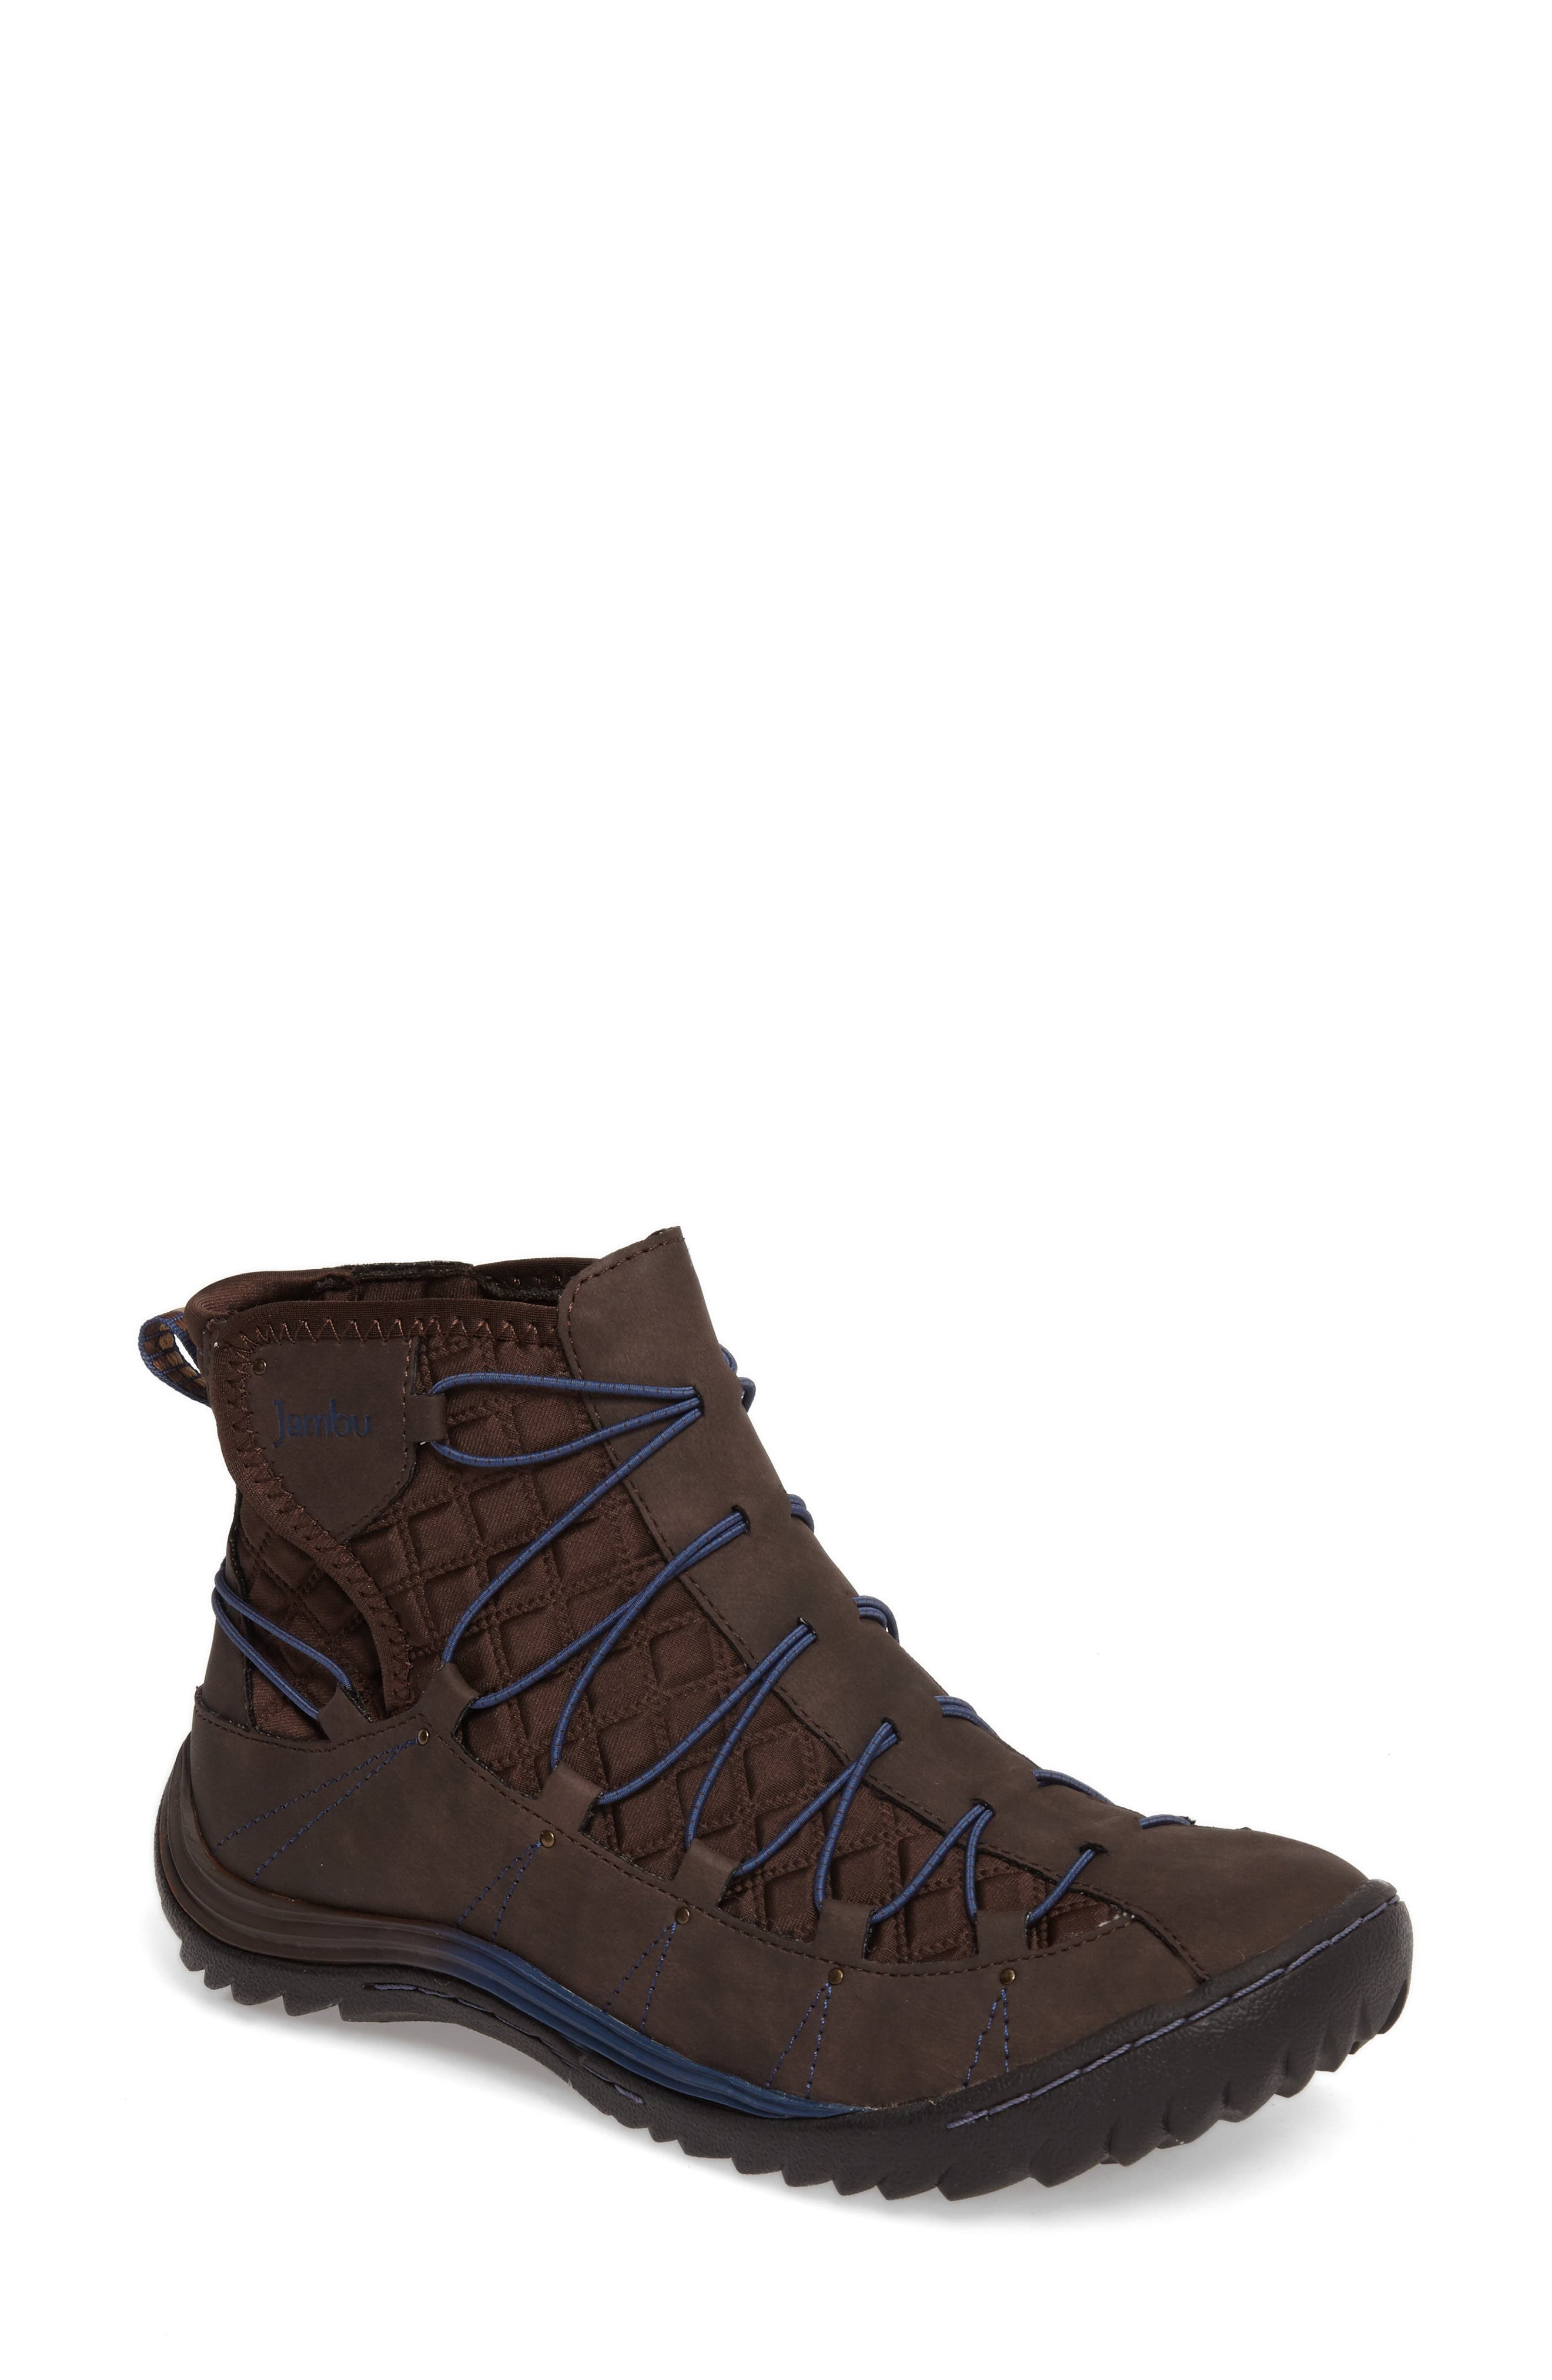 Spirit Water Resistant Bootie,                         Main,                         color, Brown Textile